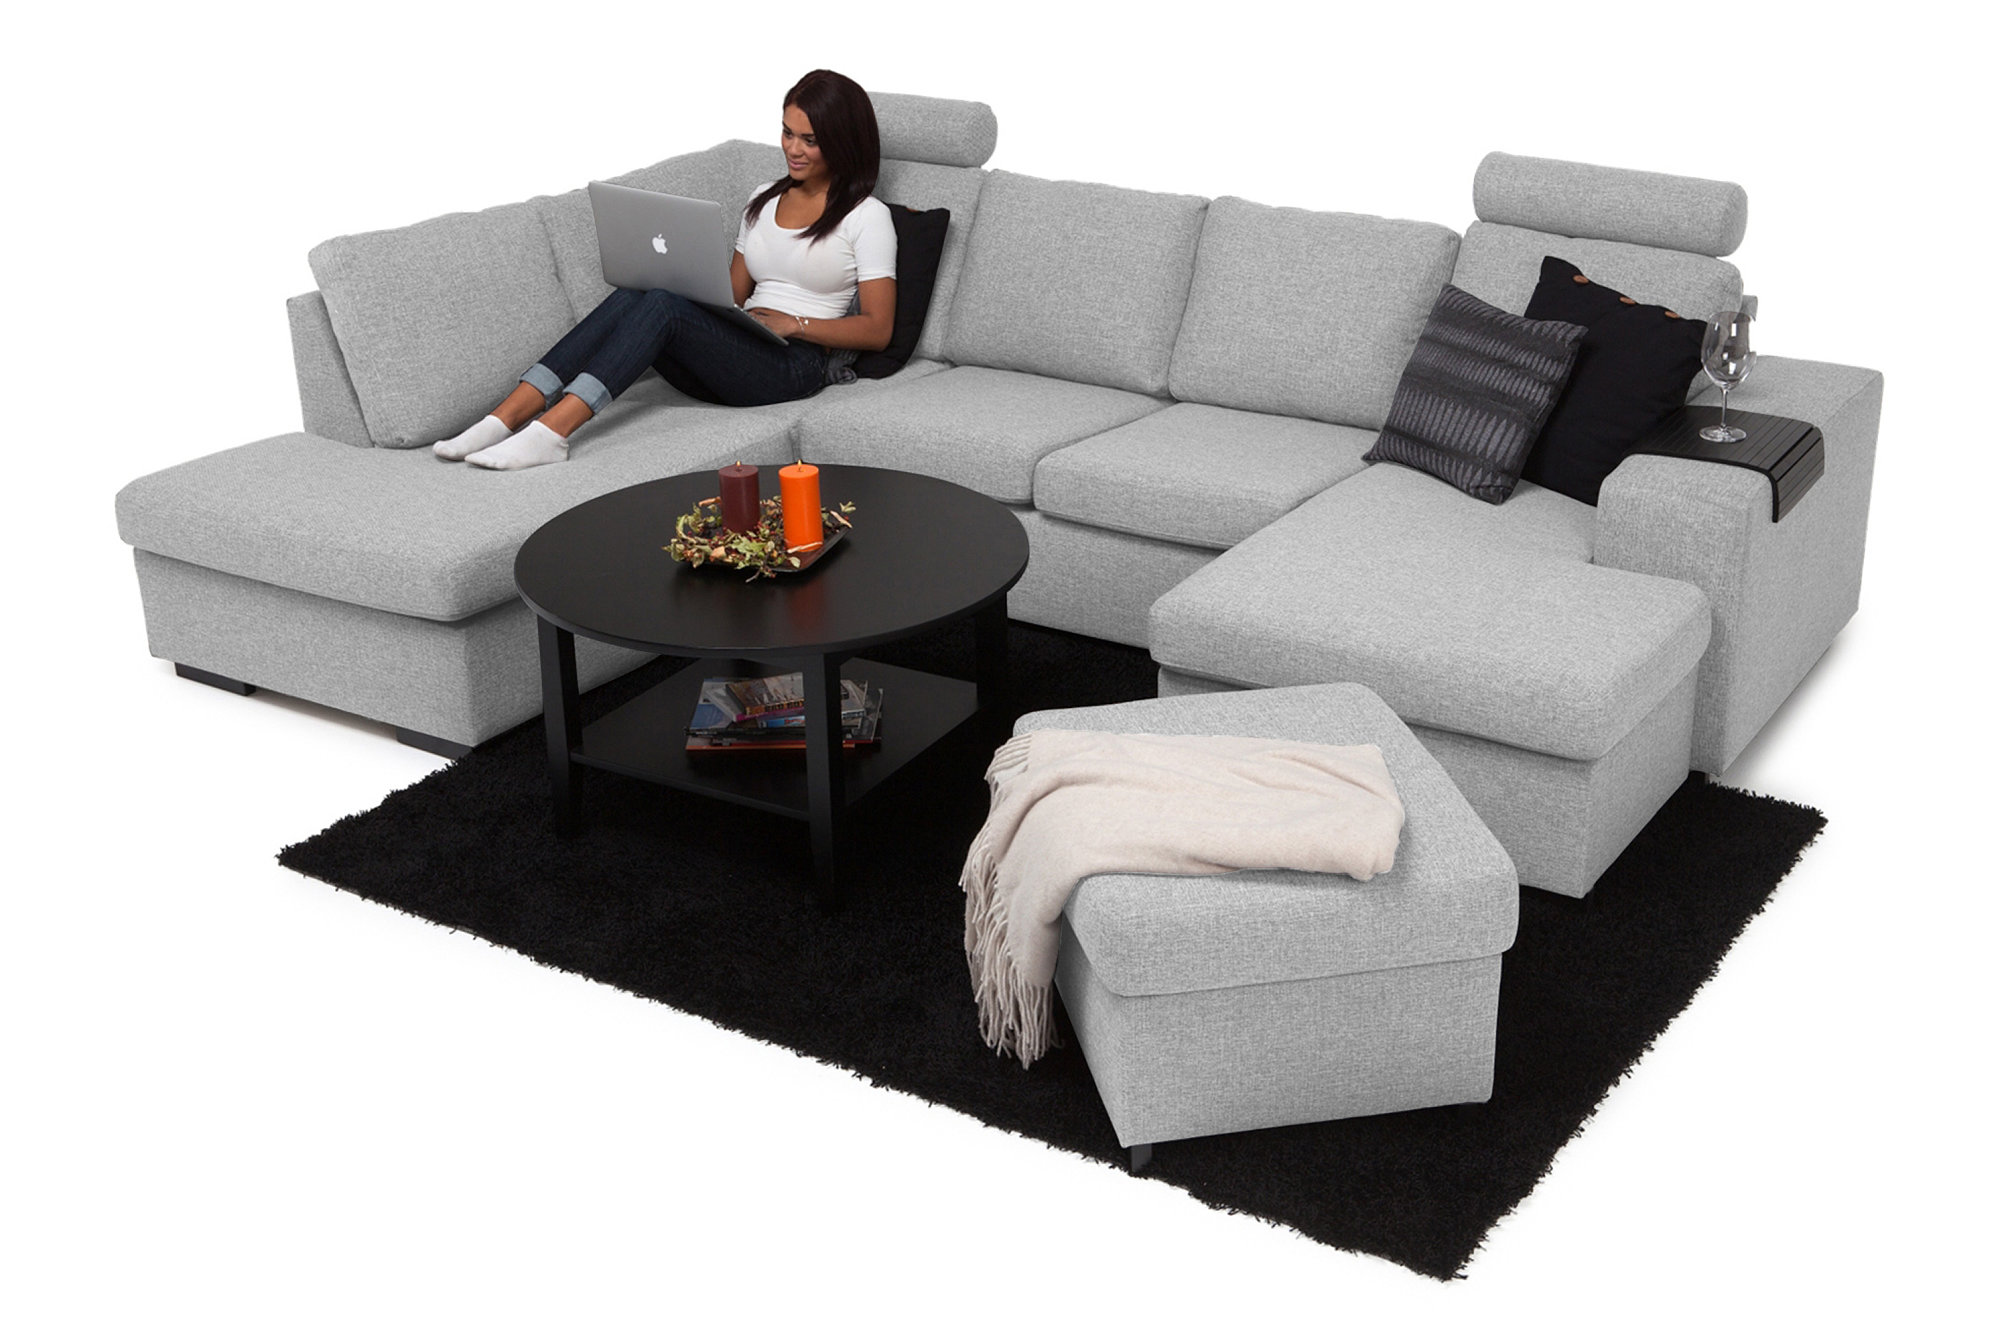 Best U Shaped Couch Reviews 2018 Bring Family And Friends Closer